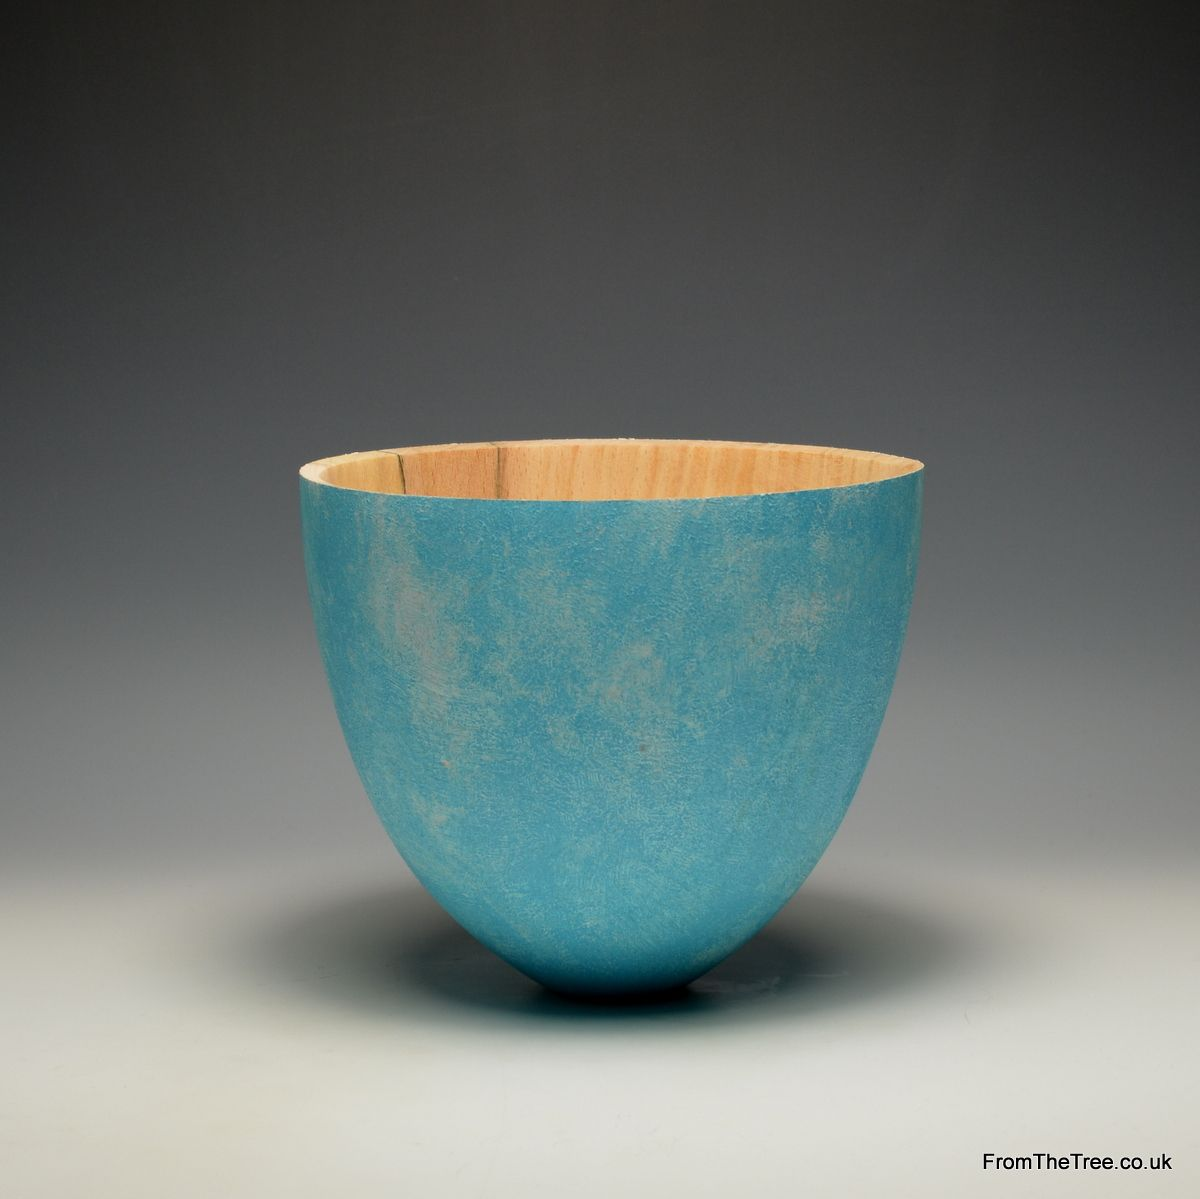 Beech, gesso & acrylic bowl made by George Watkins